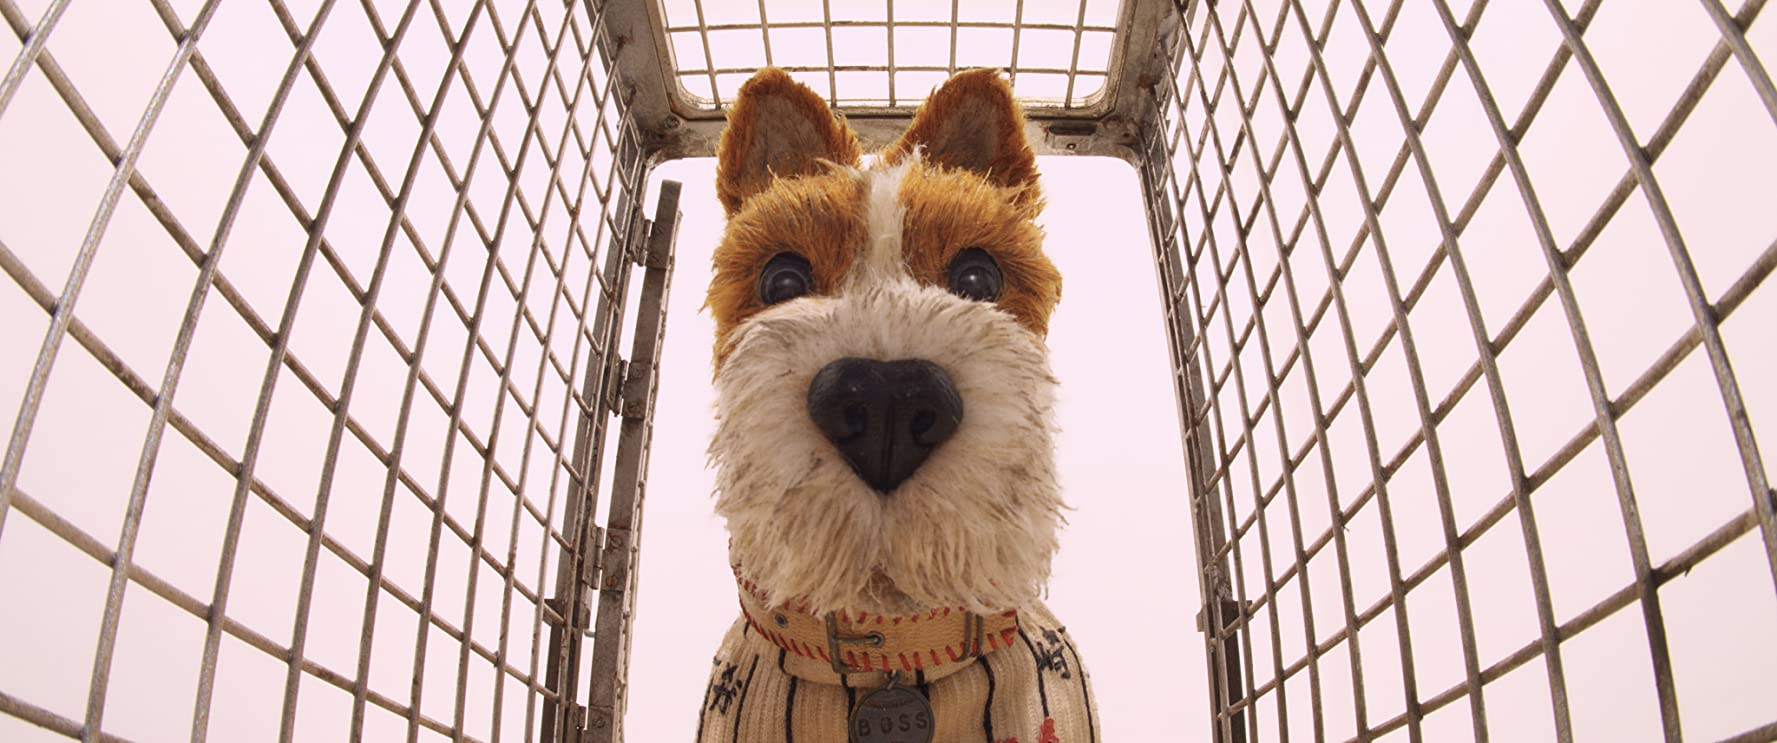 Bill Murray in Isle of Dogs (2018)